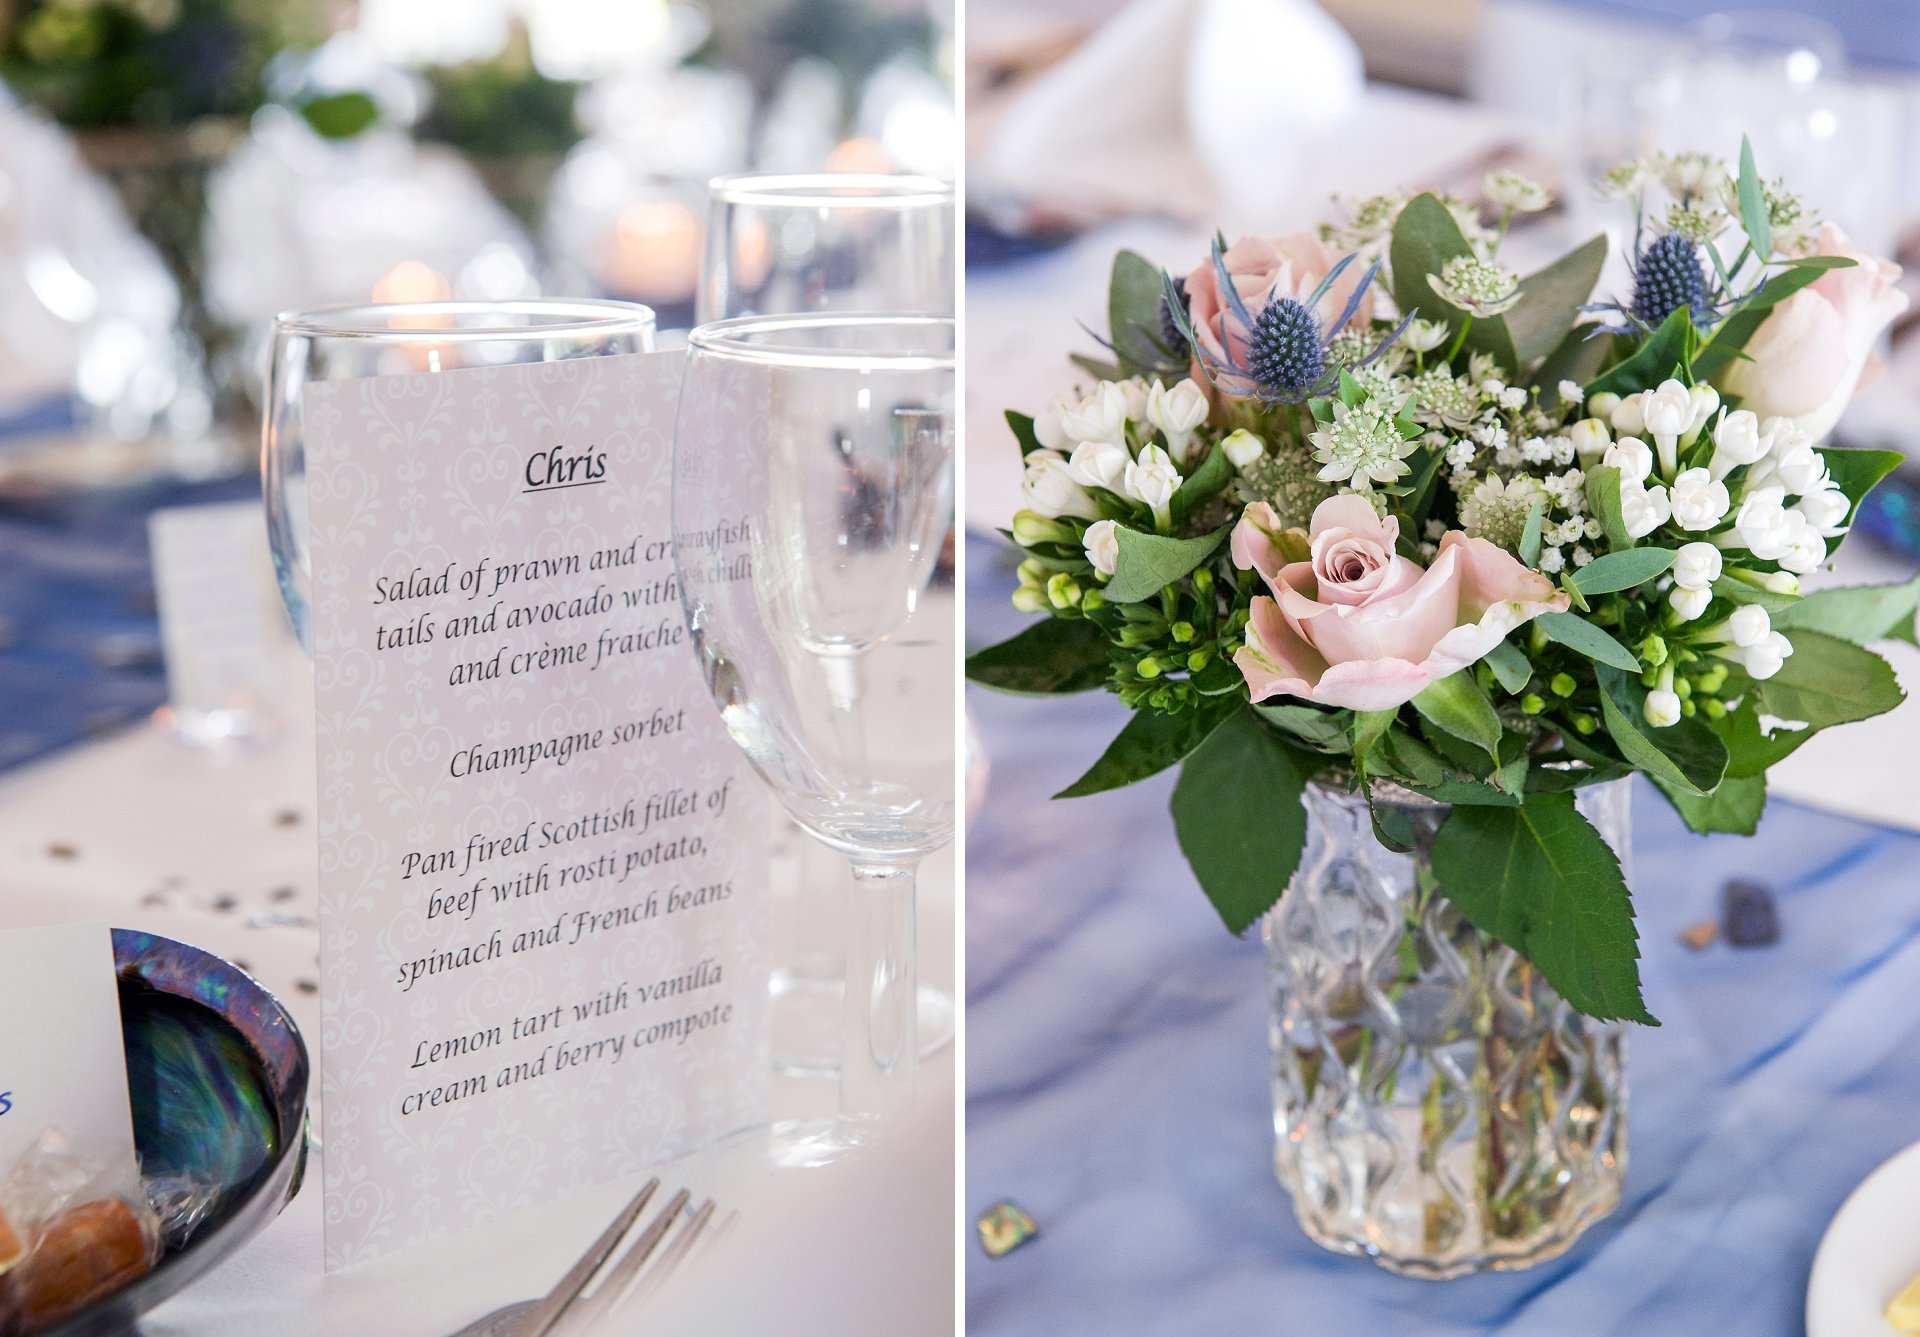 Menu card and table flowers in glass vases at Ghyll Manor